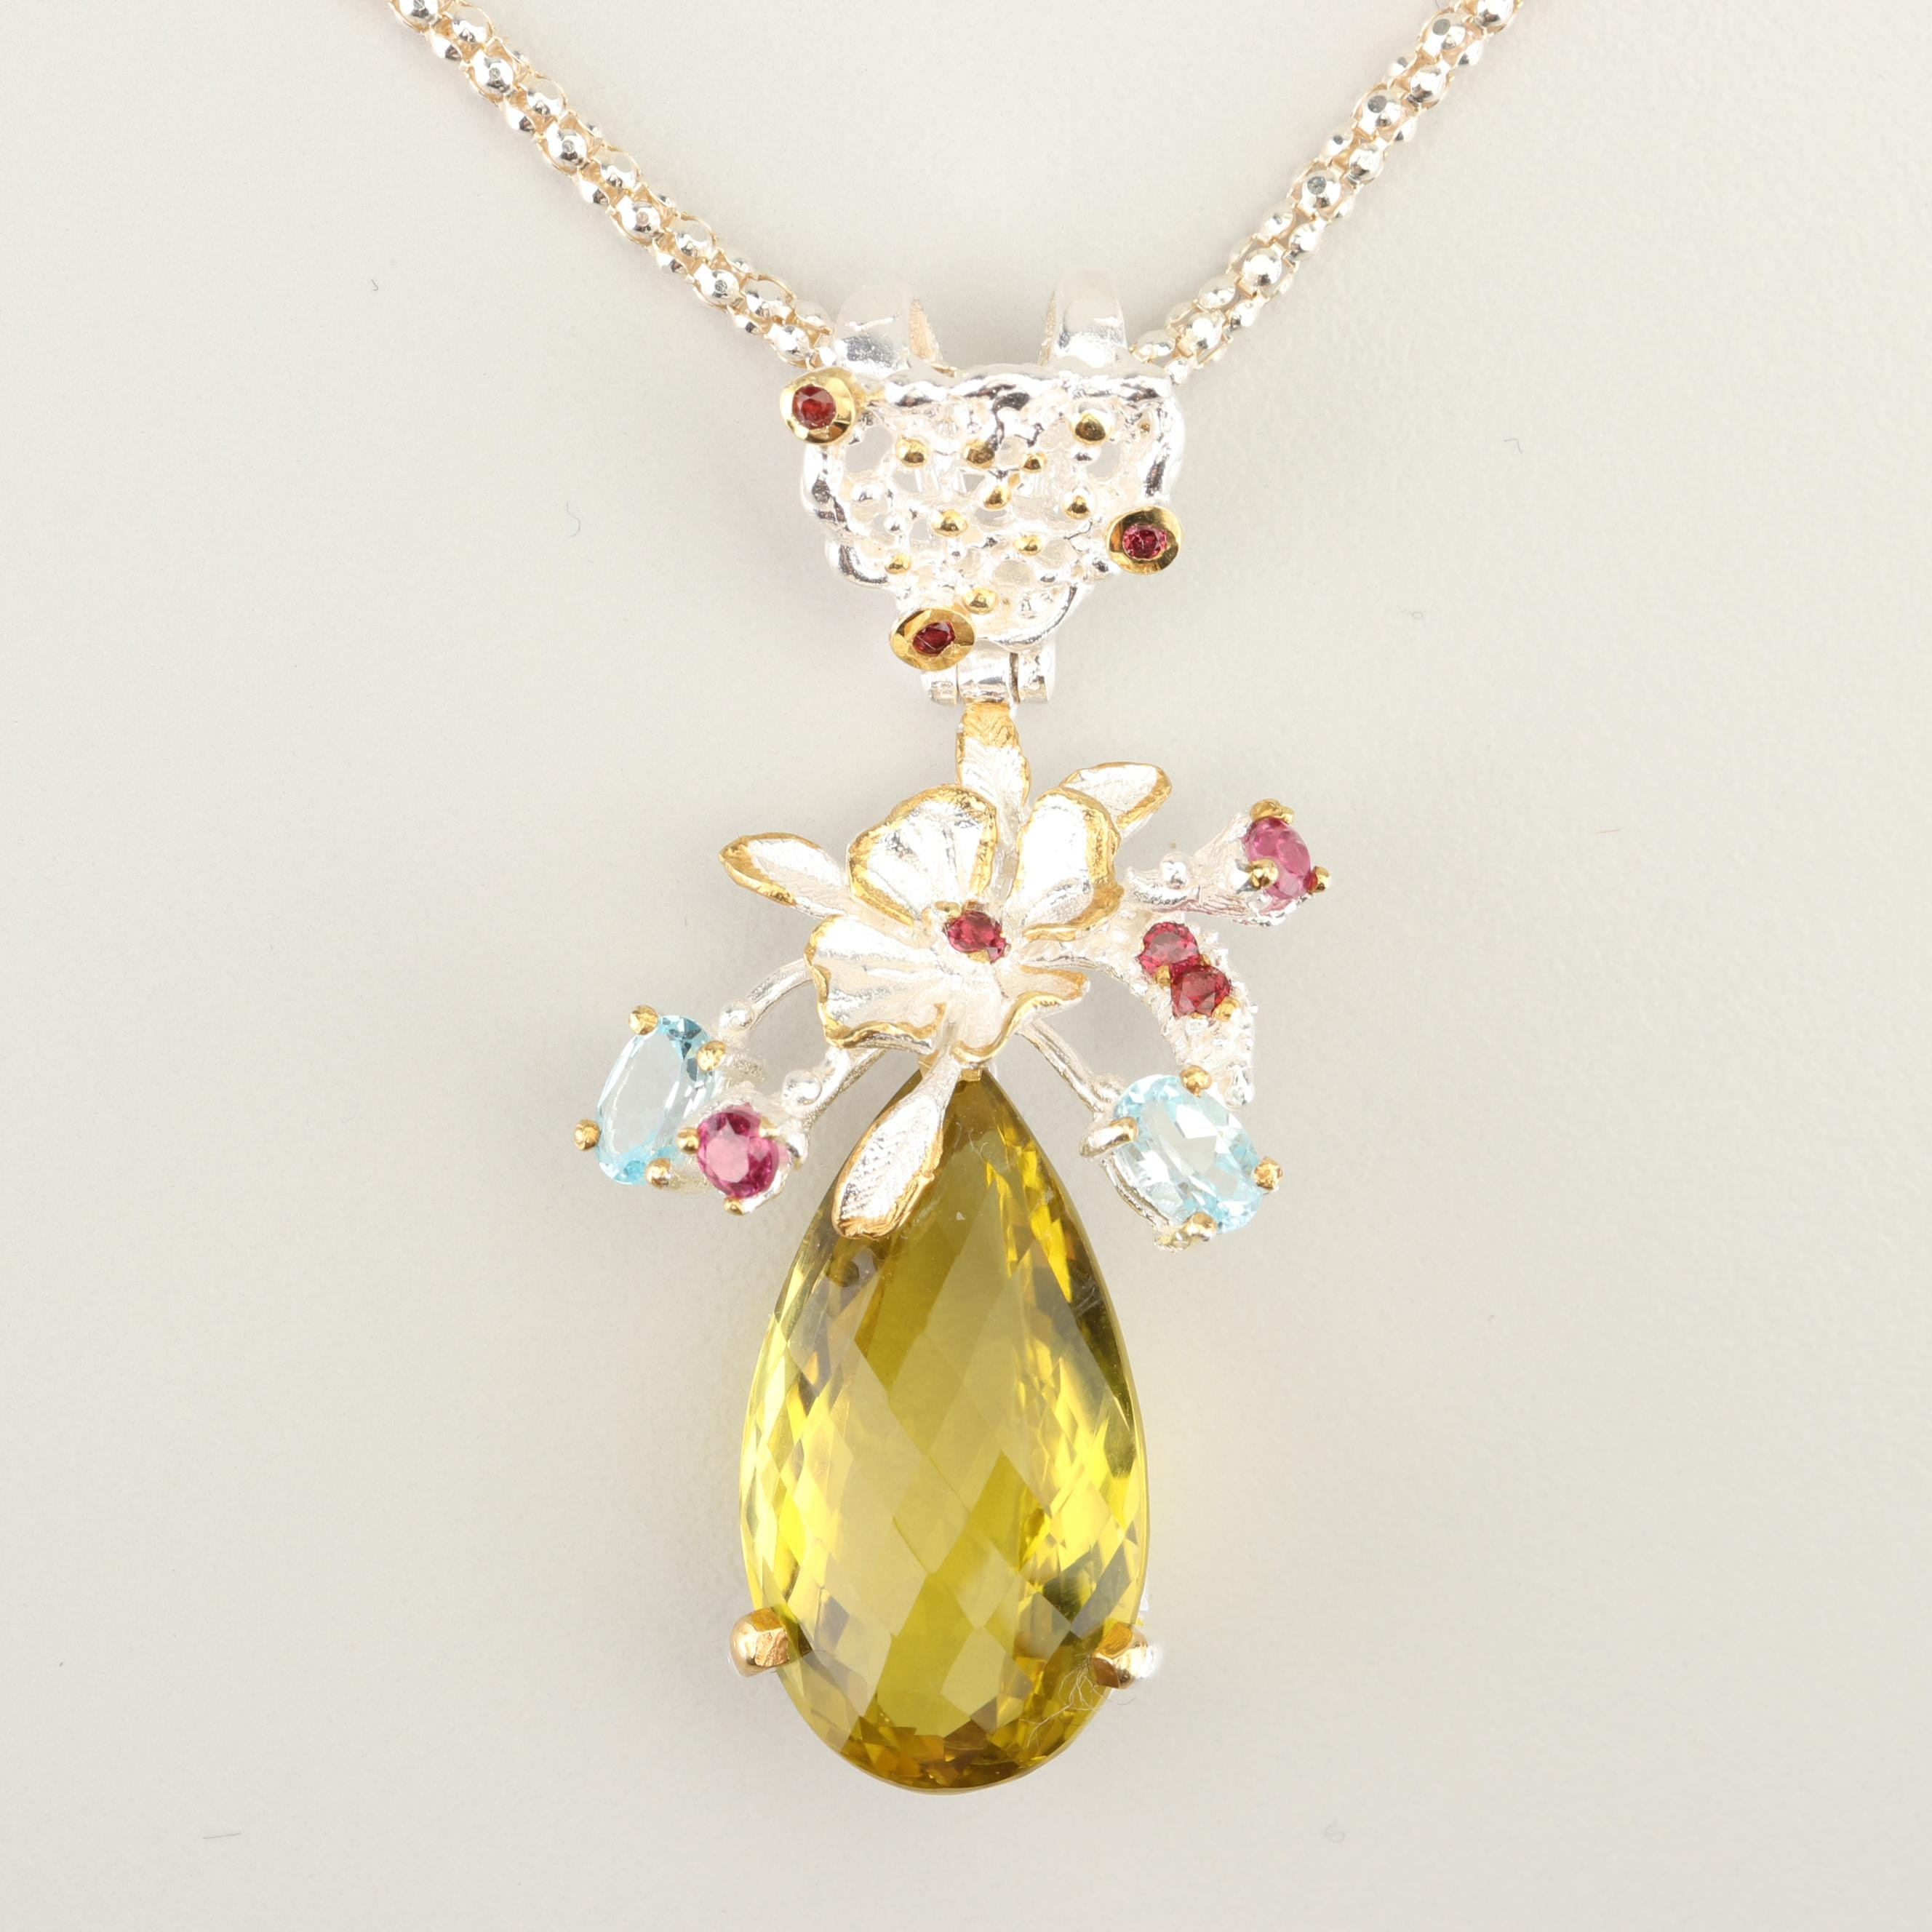 Sterling Silver 21.50 CT Citrine, Blue Topaz, and Rhodolite Garnet Necklace